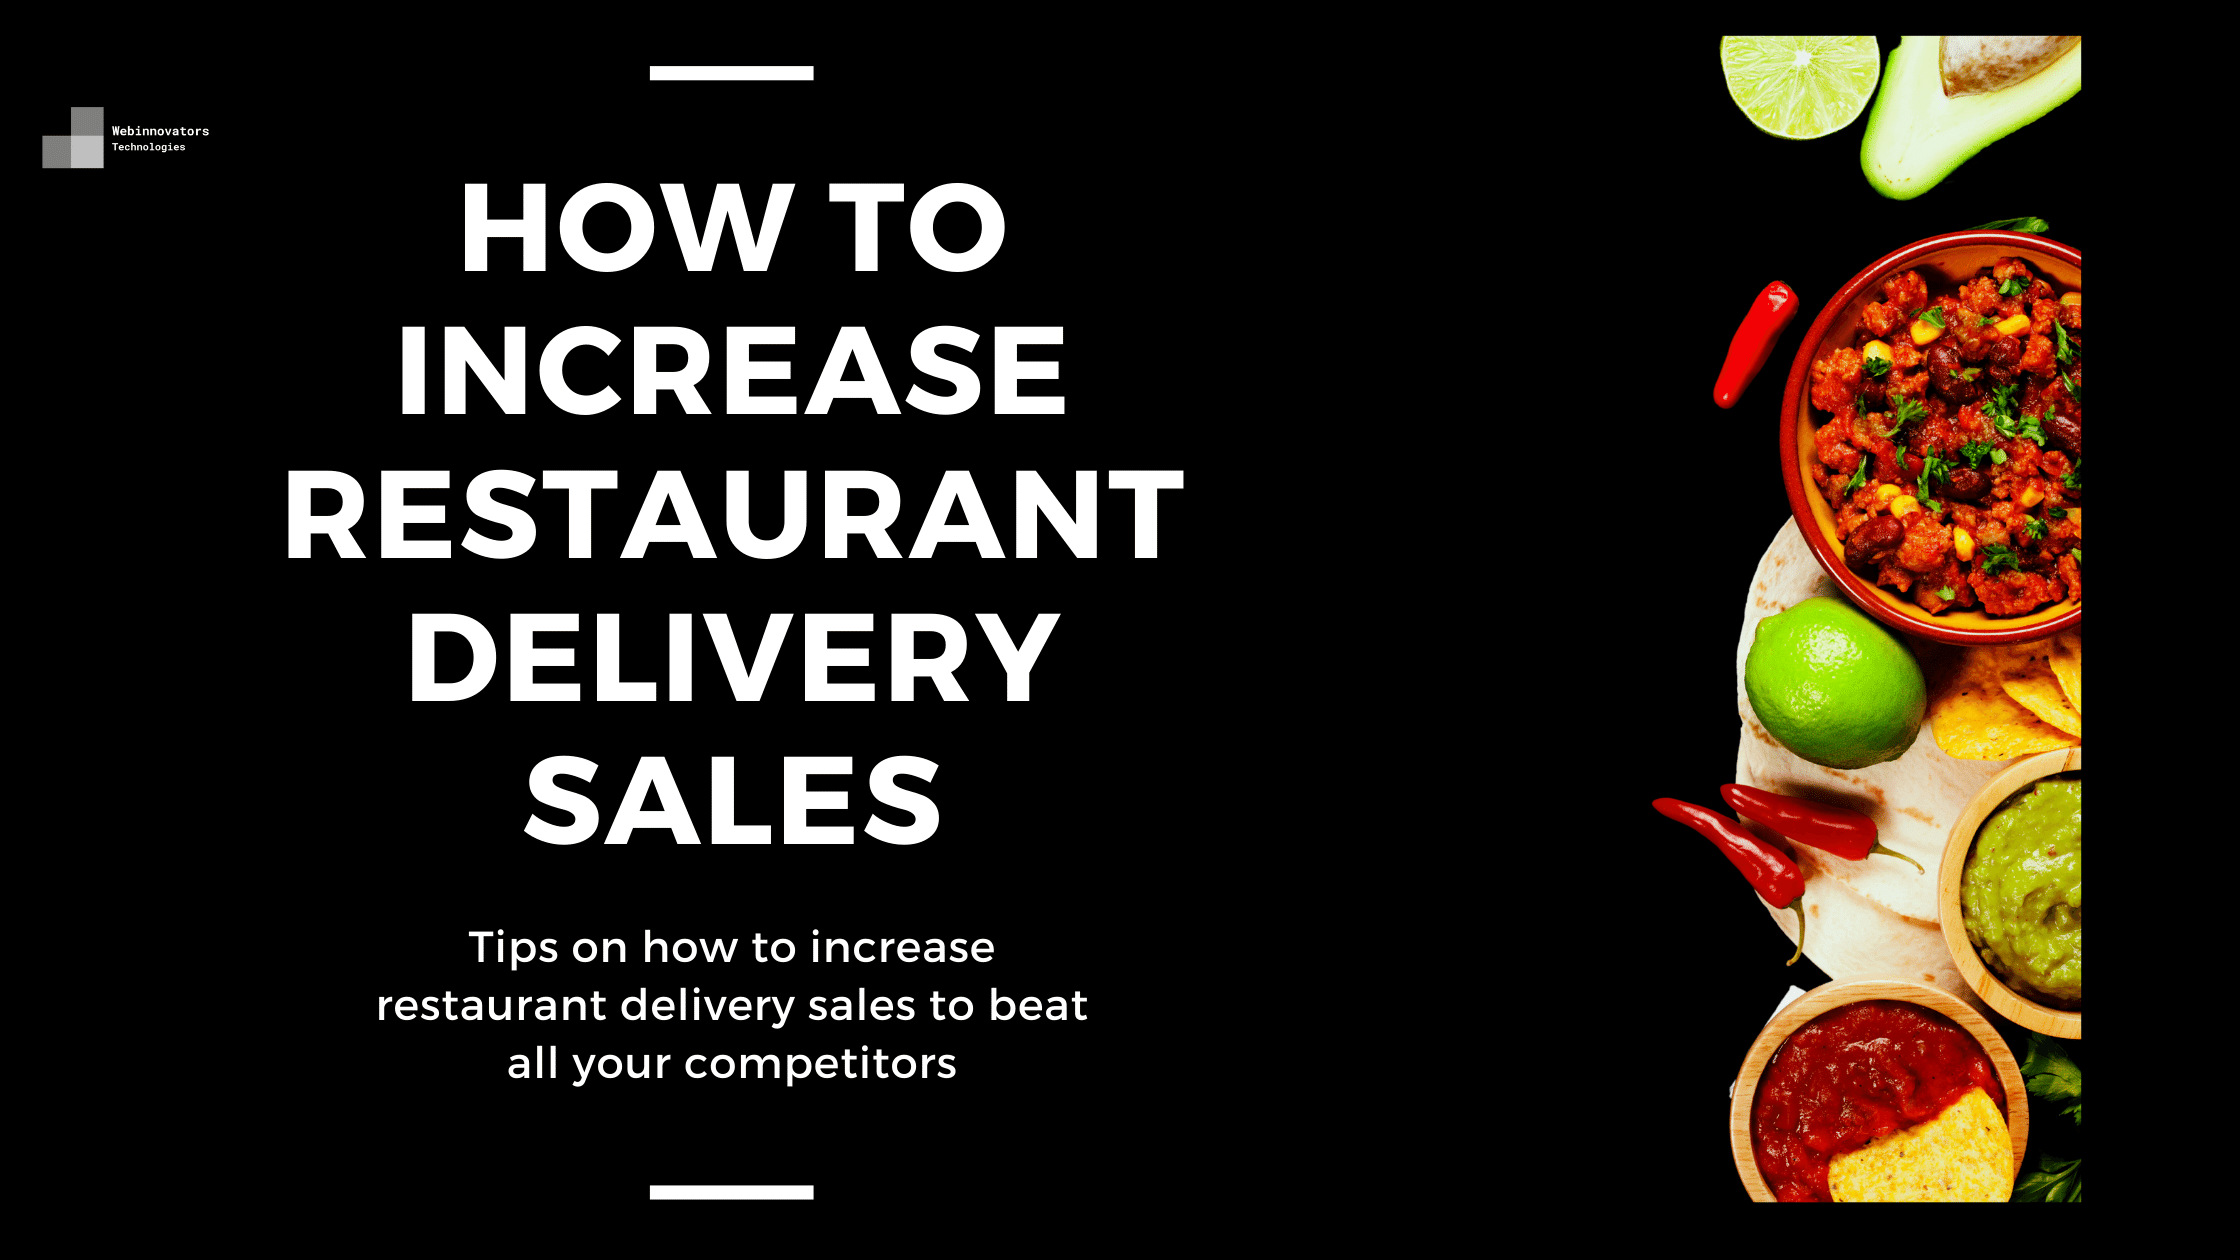 How to increase restaurant delivery sales